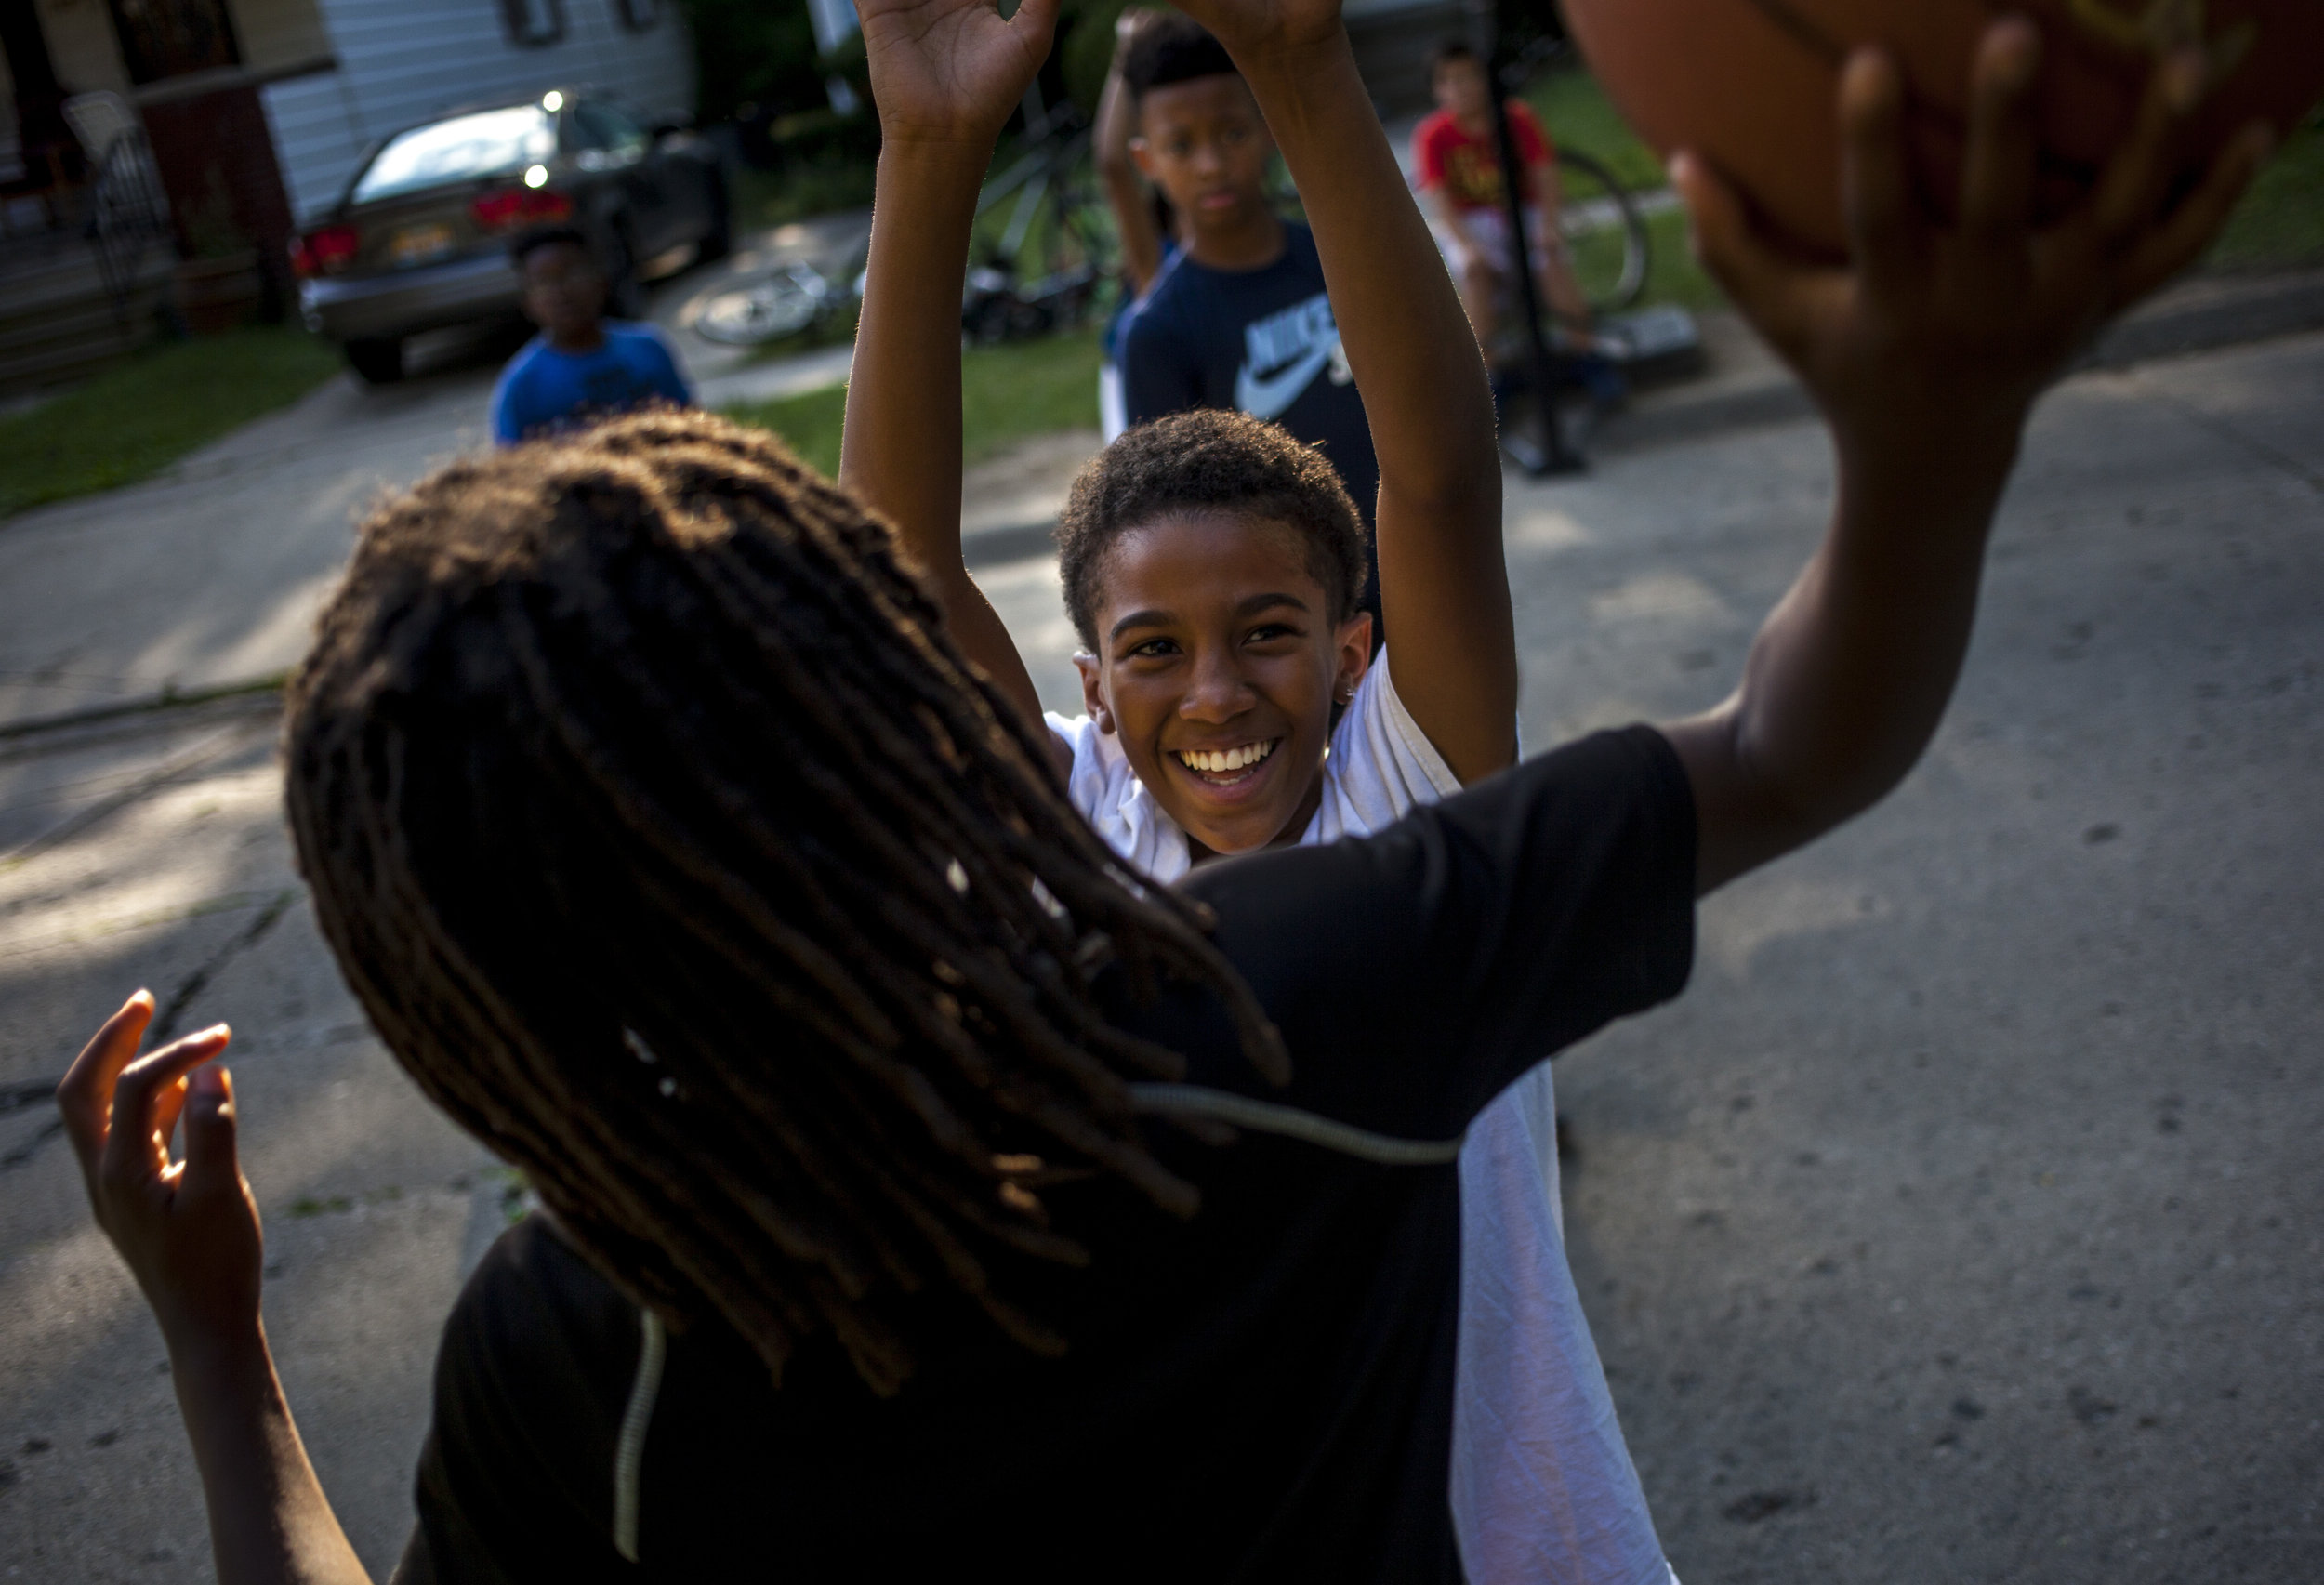 Cayden Gomez, 12, grins as he tries to block his friend Boop Hardy, 10, during a game of basketball outside their friend's house on Saginaw's Westside.